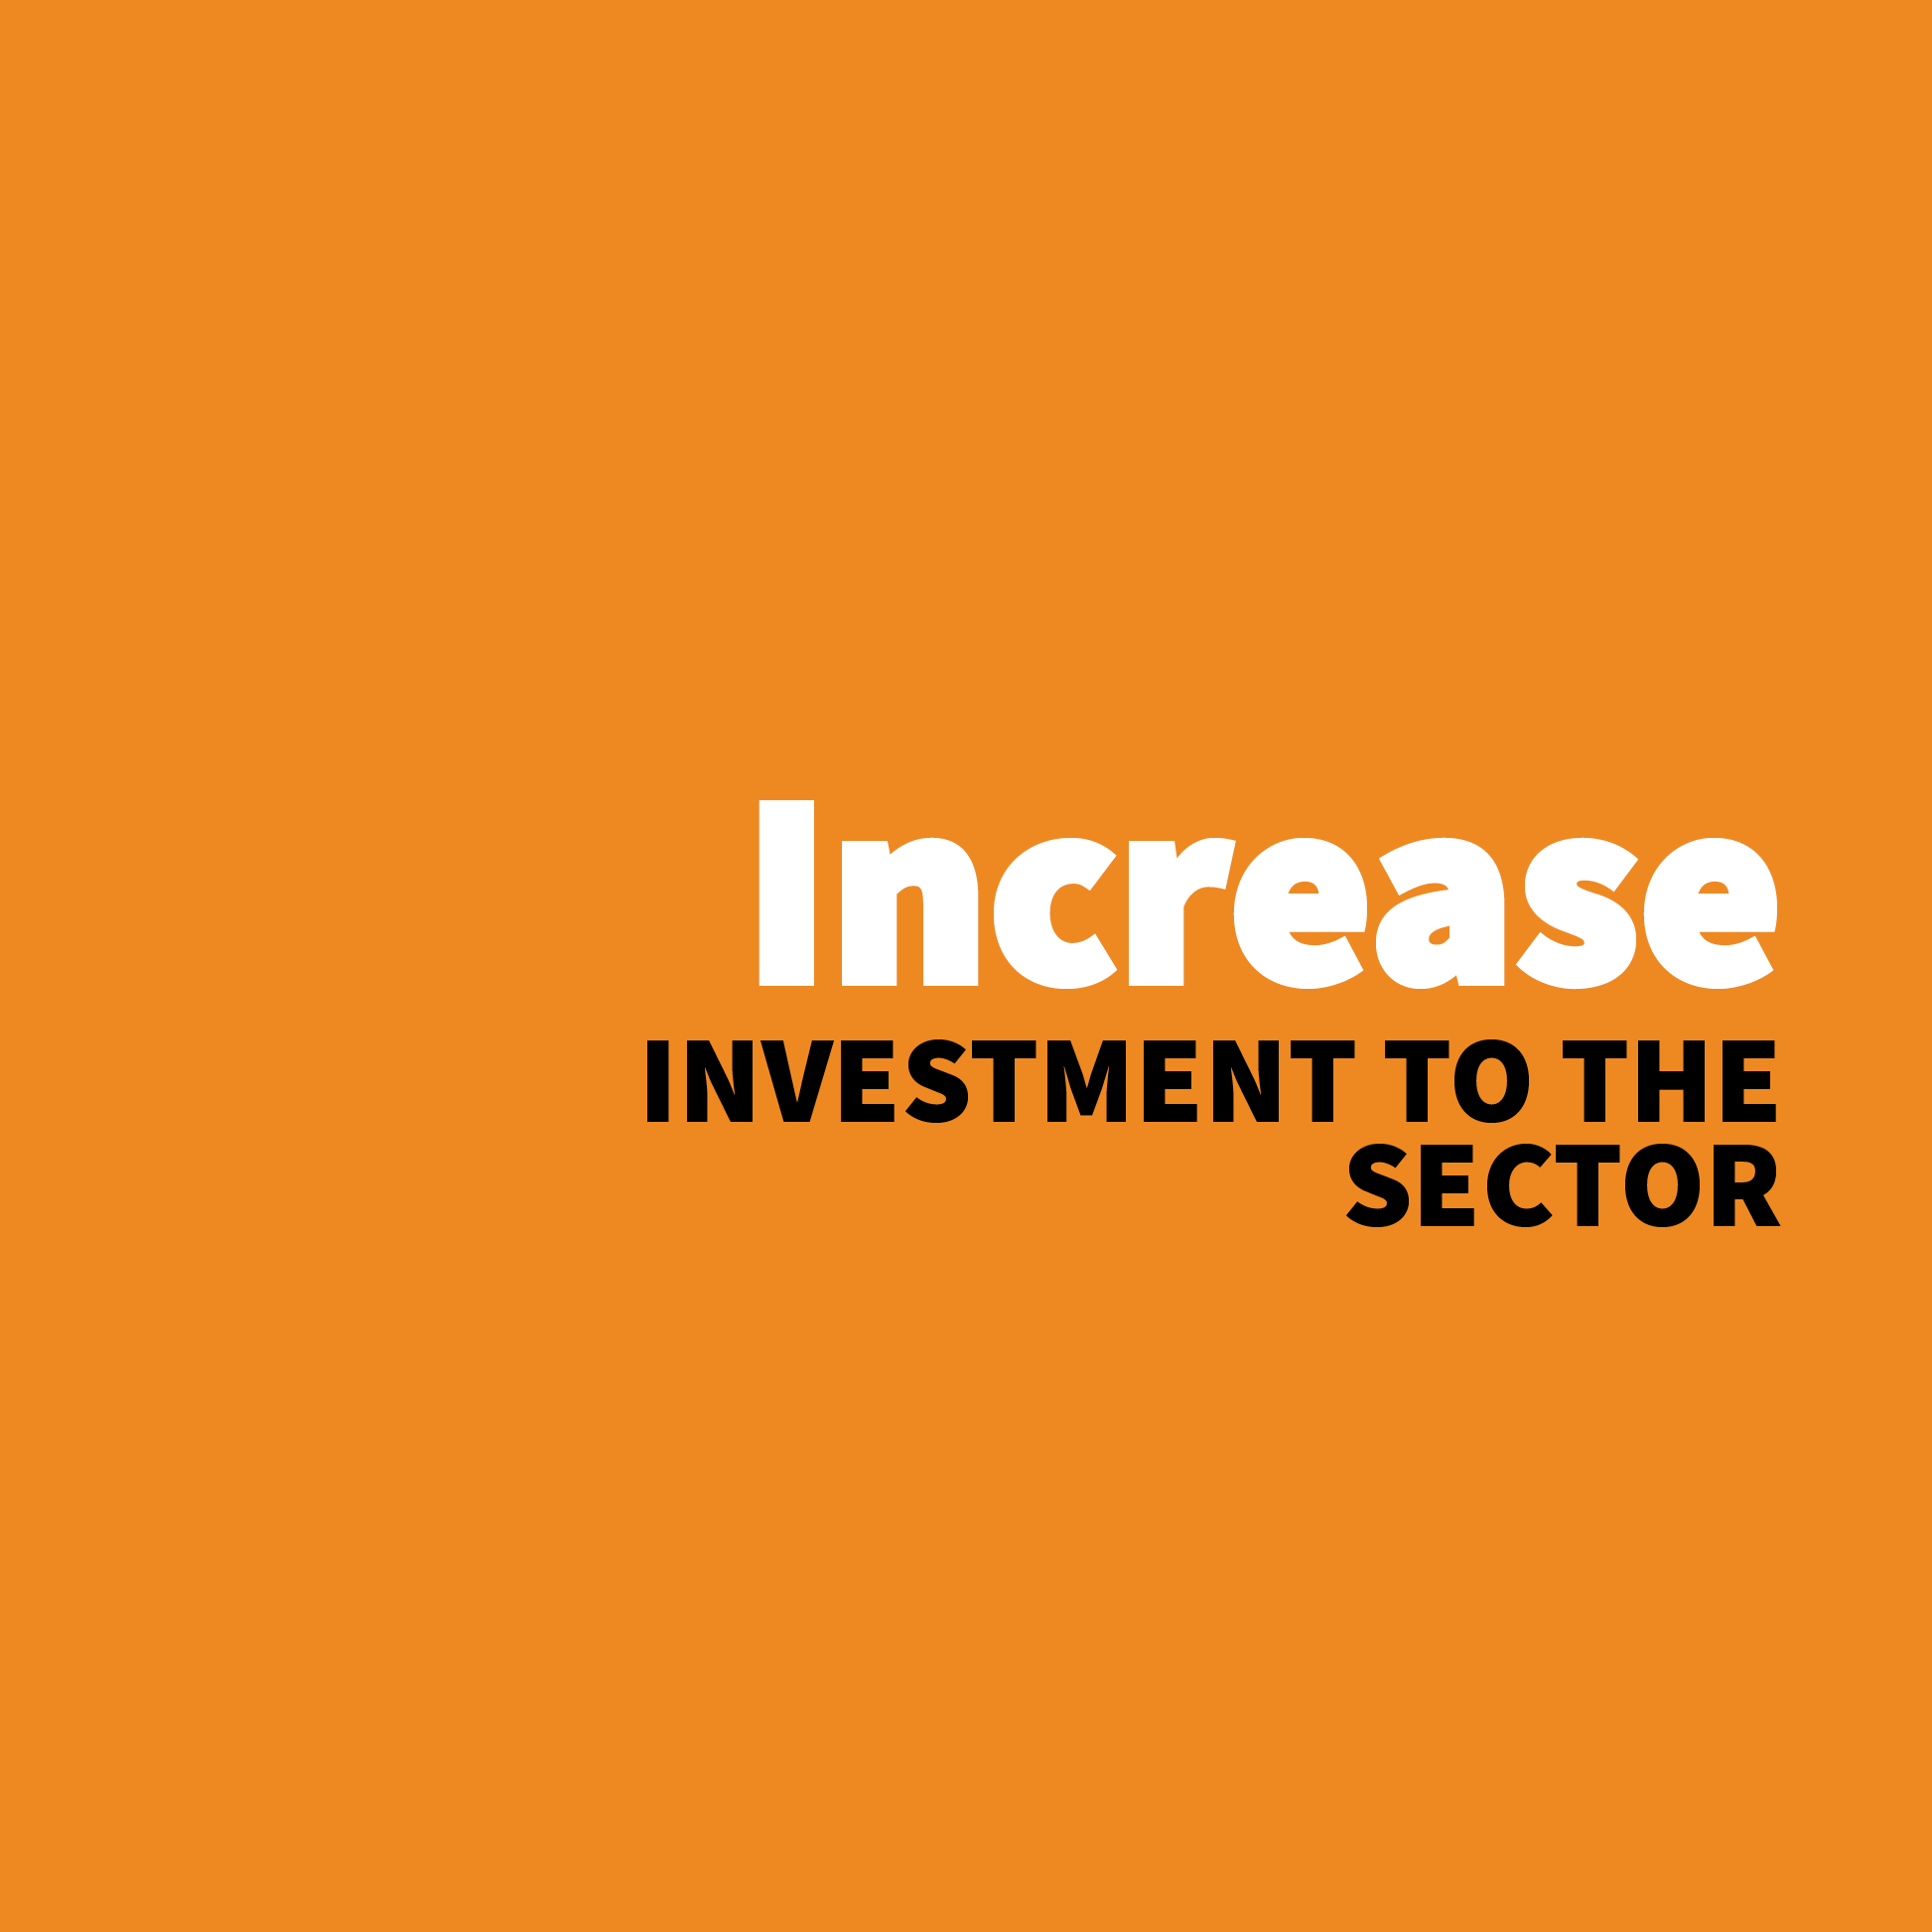 Increase Investment to the Sector